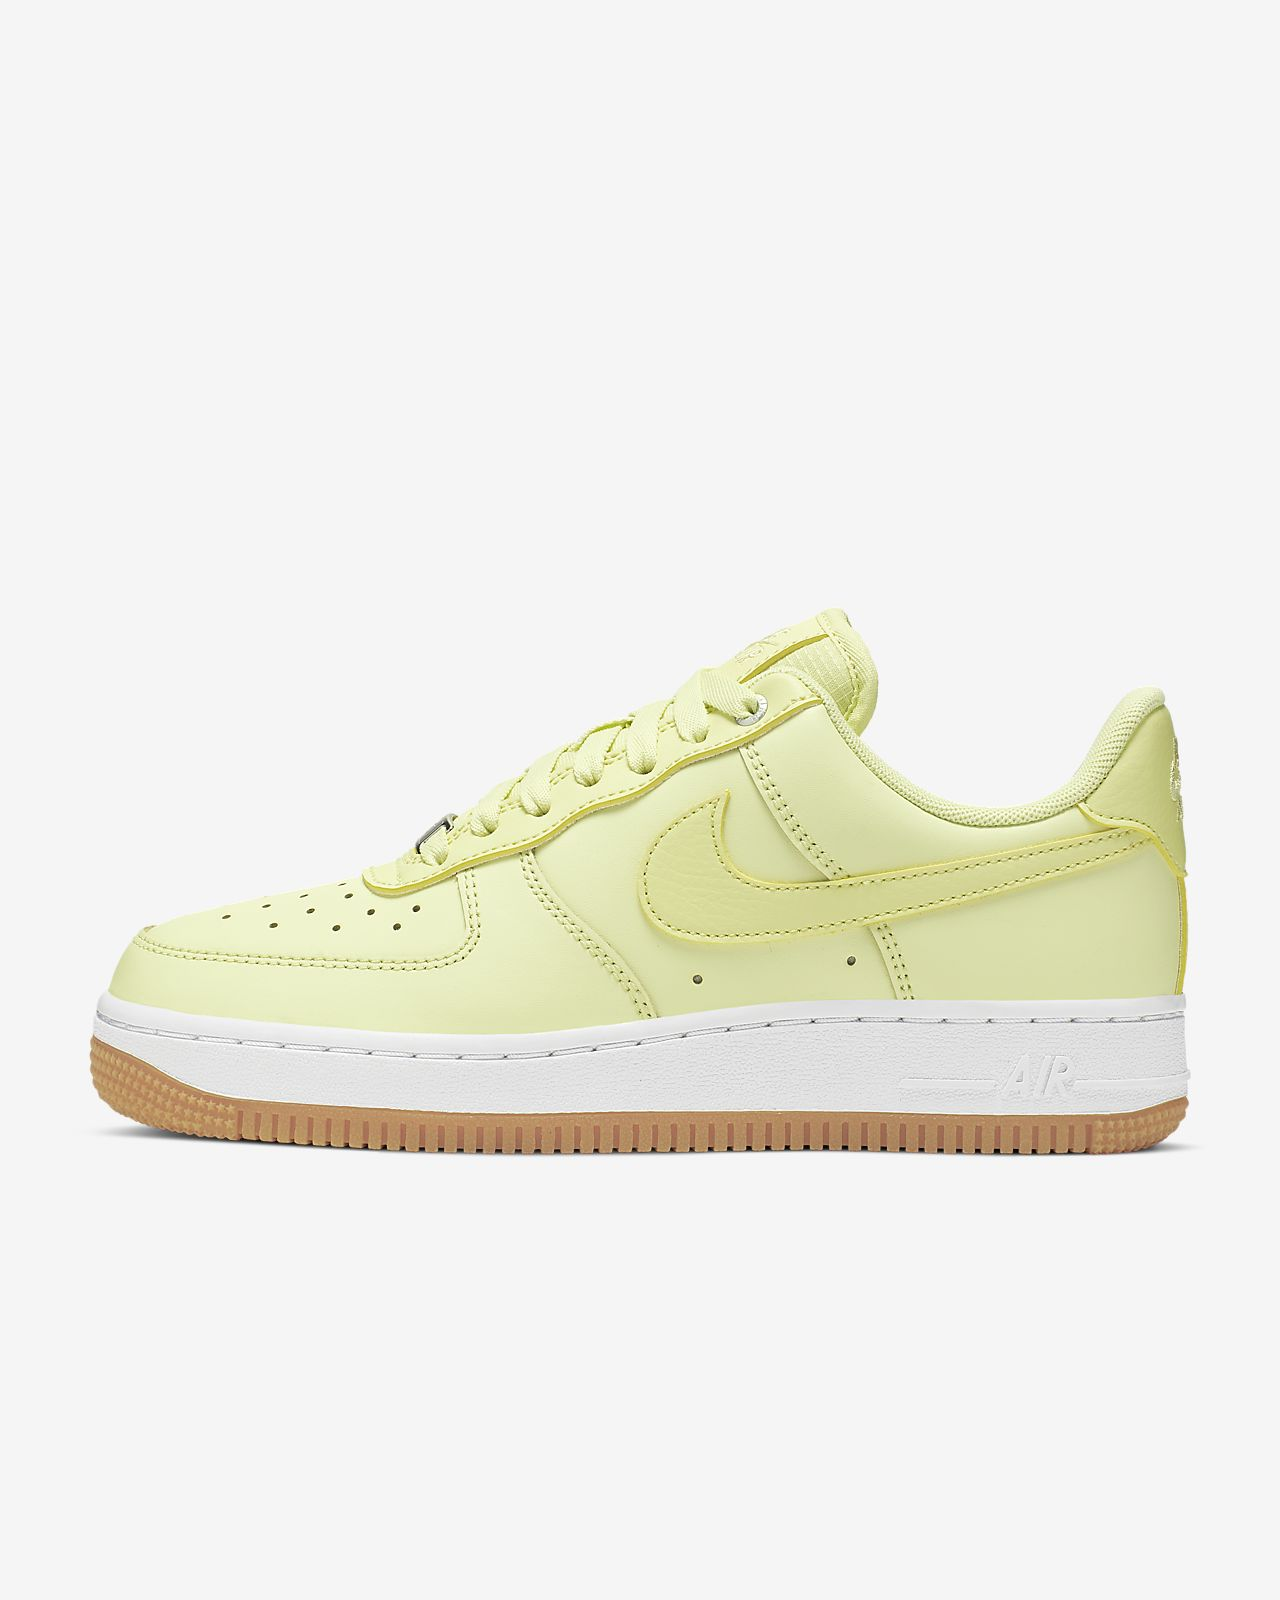 Nike Air Force 1 '07 Low Premium Zapatillas - Mujer